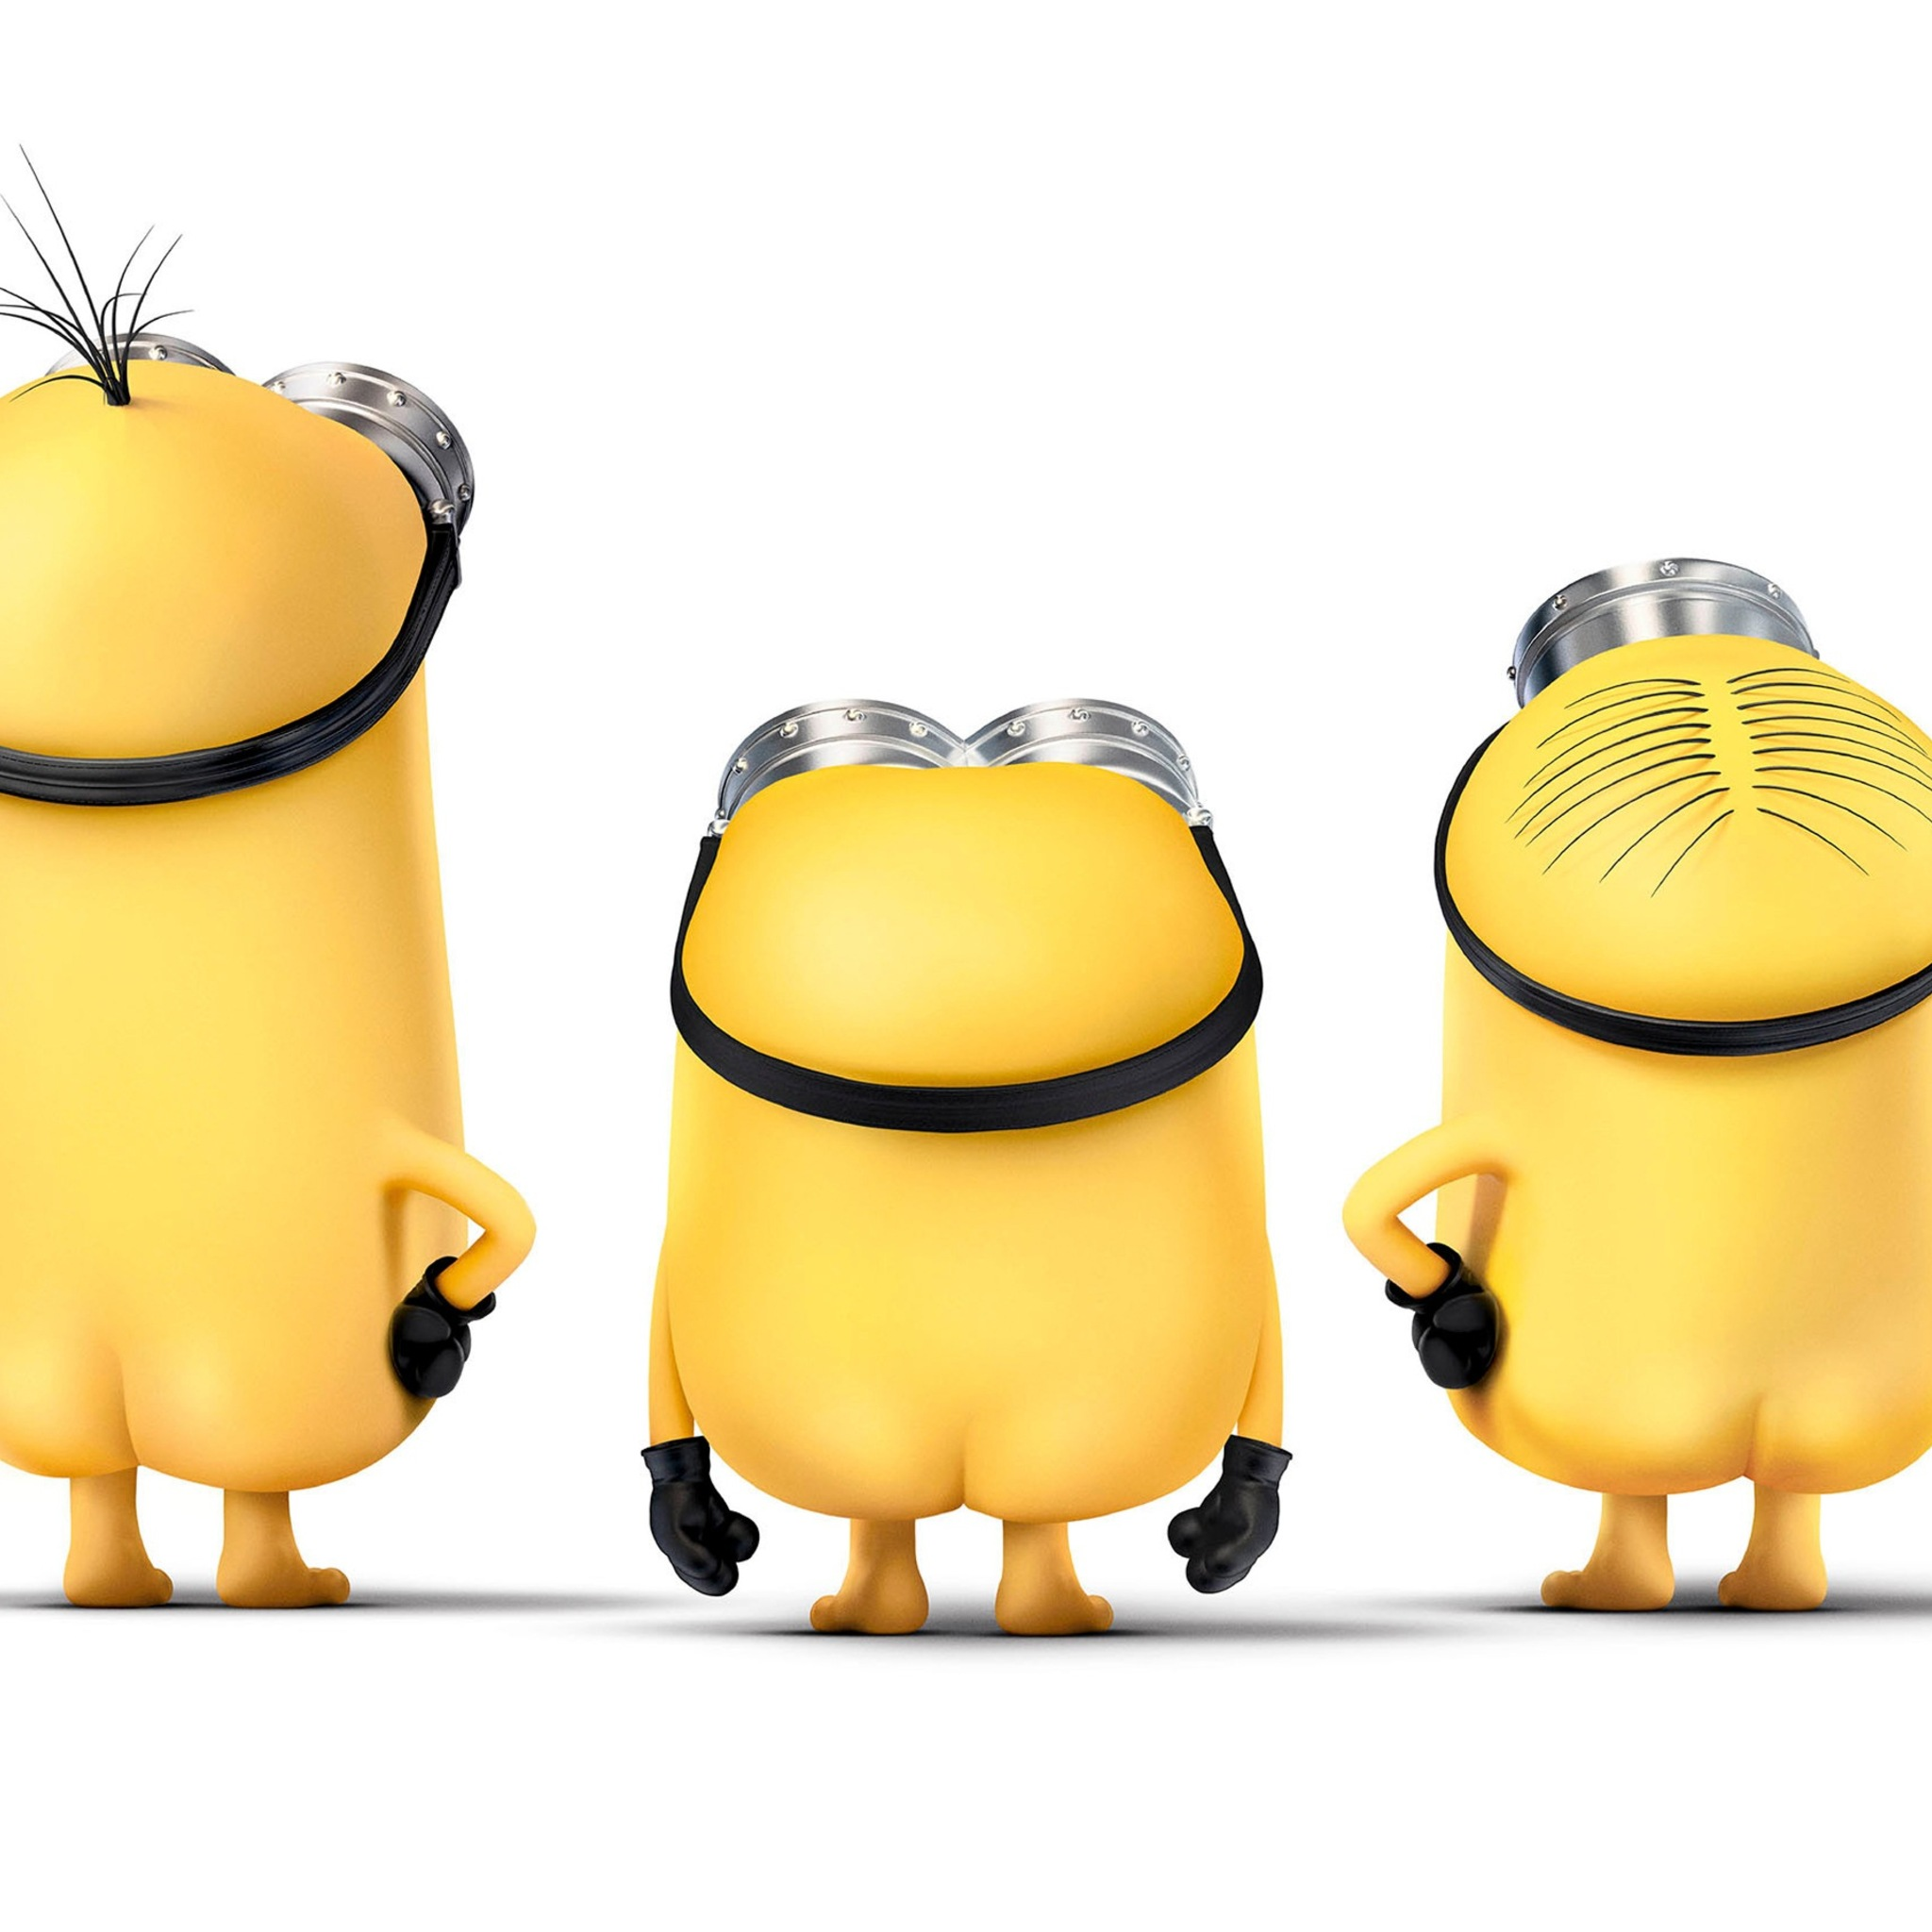 2048x2048 minions funny ipad air hd 4k wallpapers, images